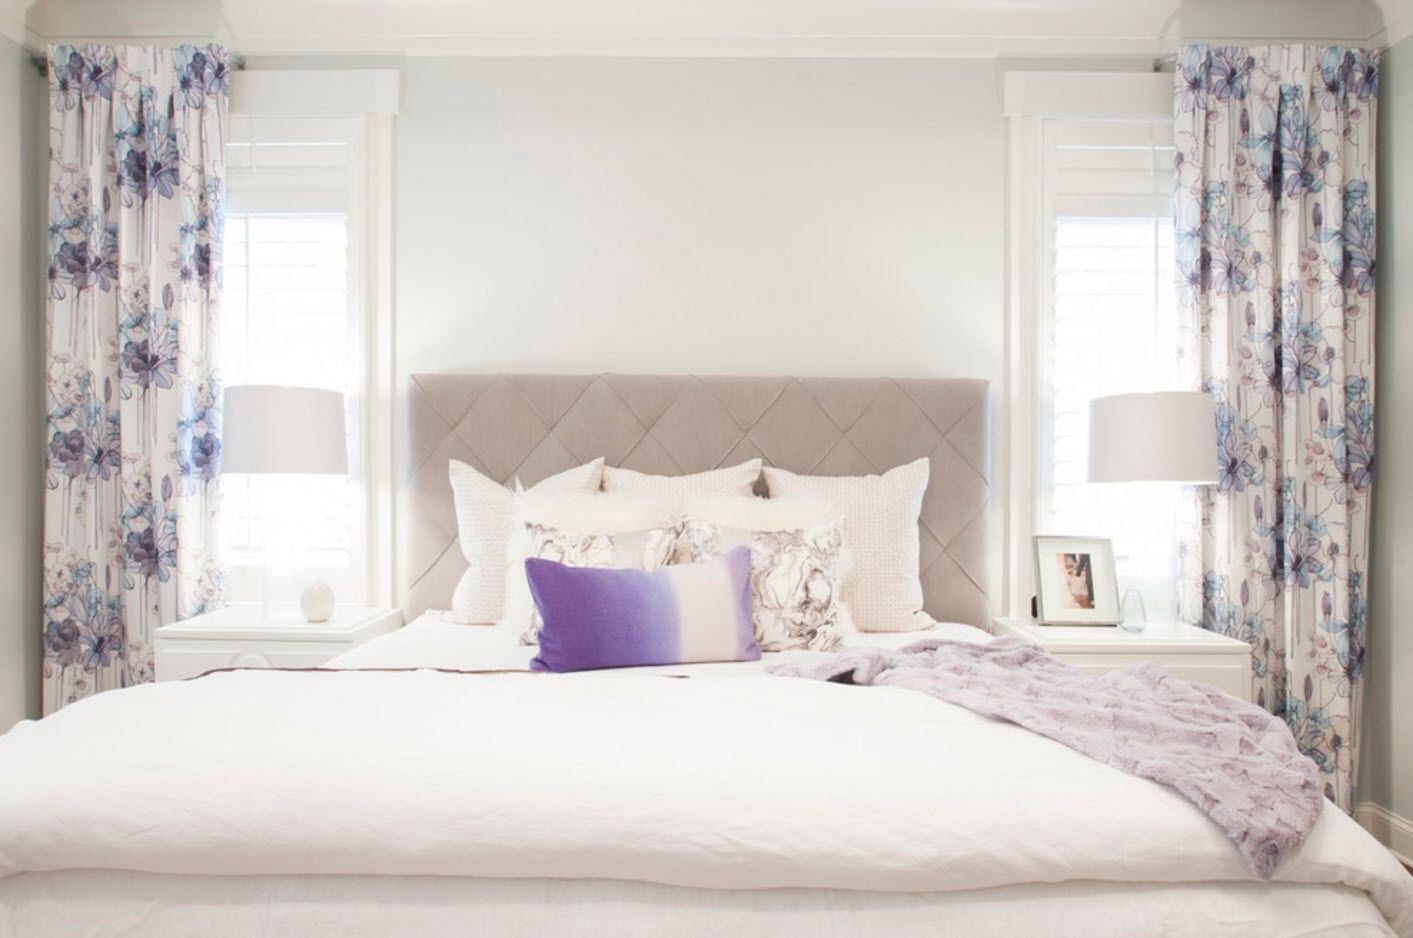 White minimalism at the private house's bedroom